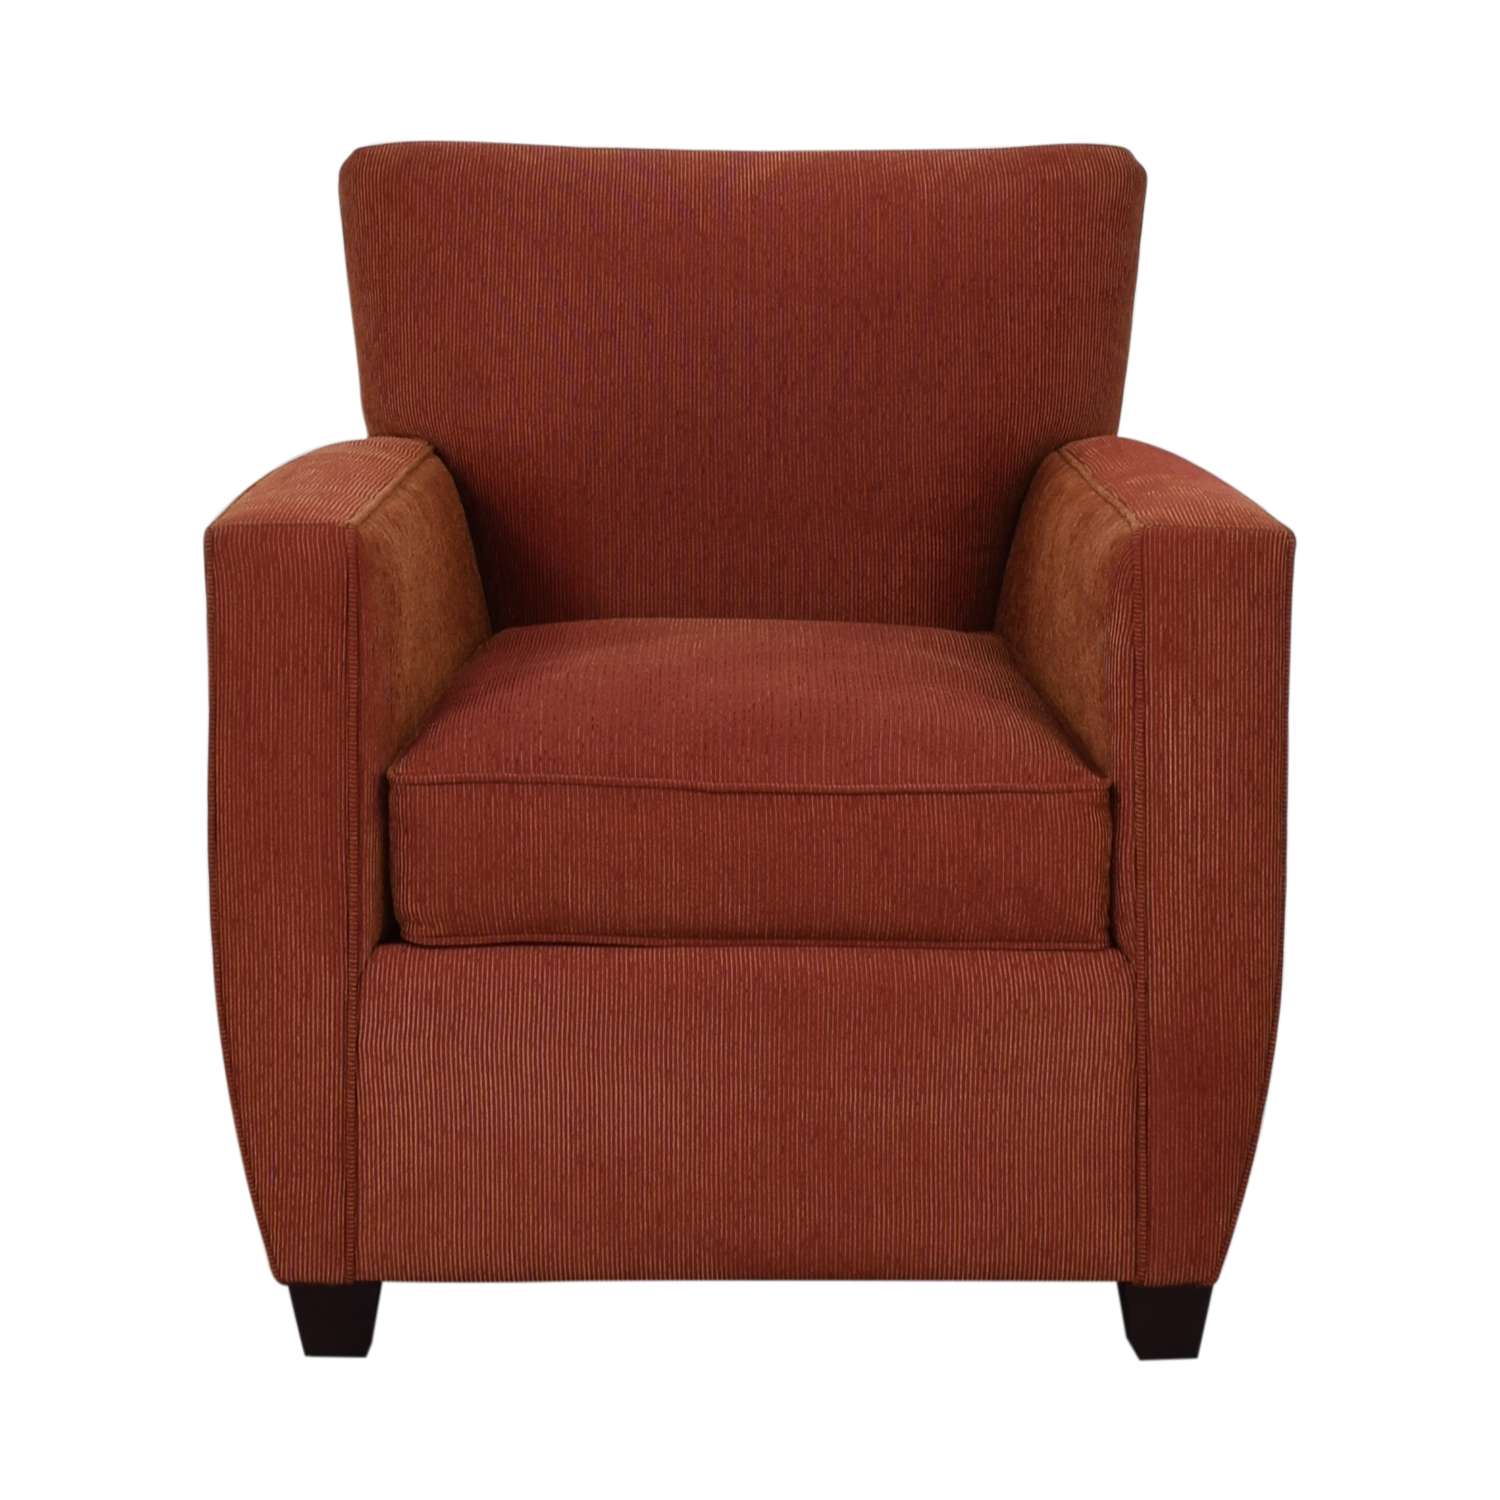 Crate & Barrel Crate & Barrel Chili Red Accent Chair price